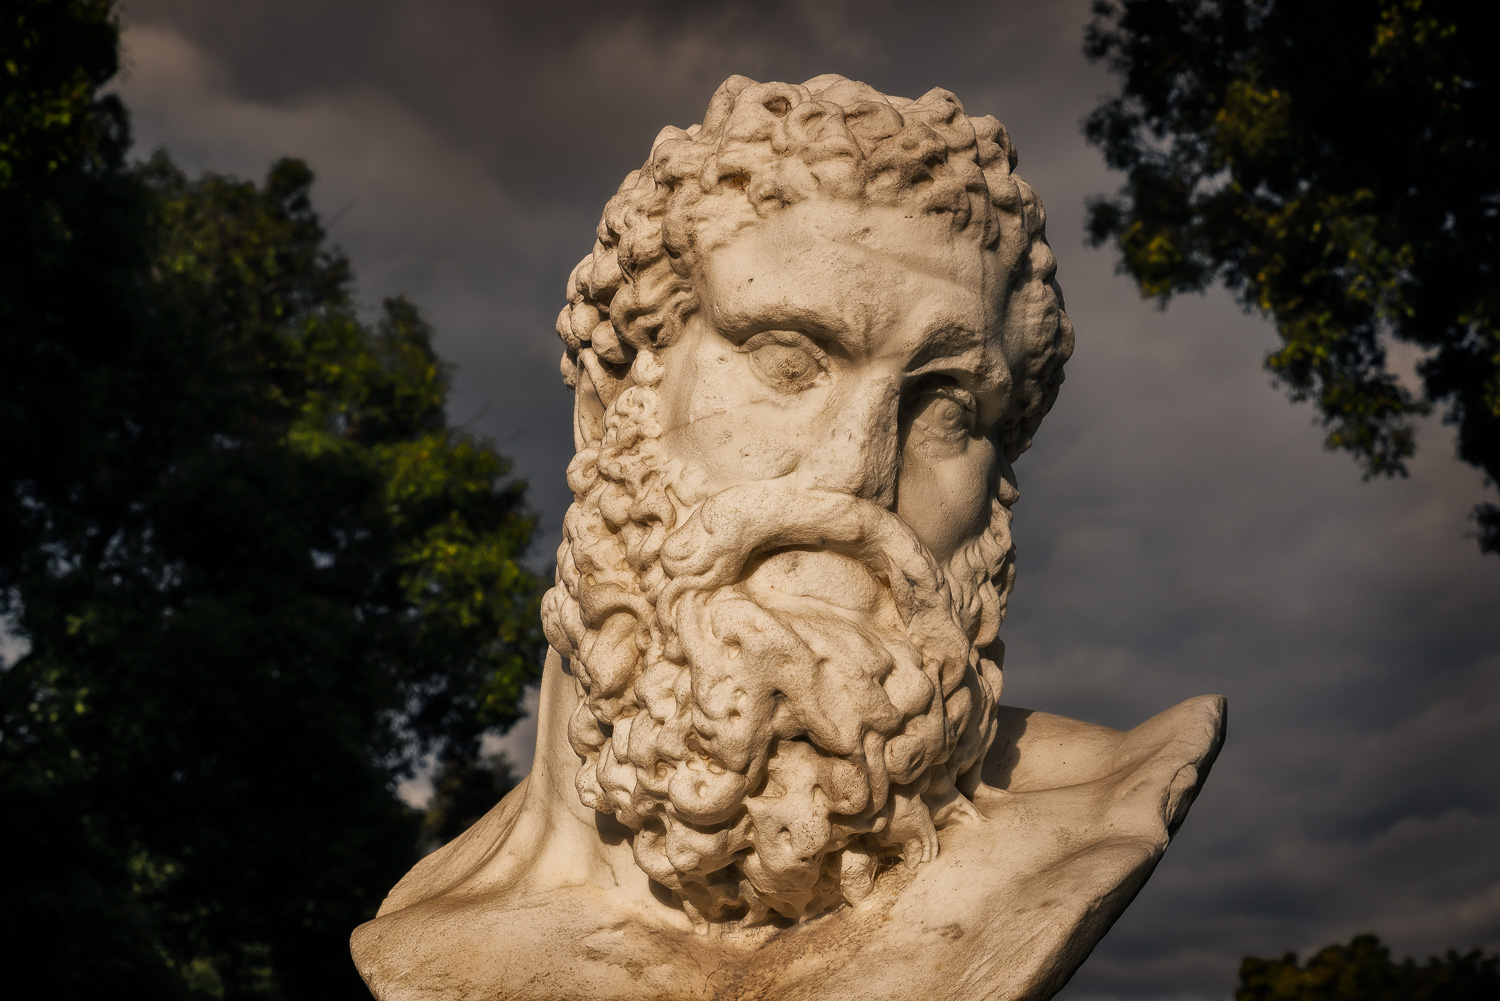 A detailed view of a bust of    Hercules    in the    Queen Victoria Gardens    in    Melbourne   , Australia.